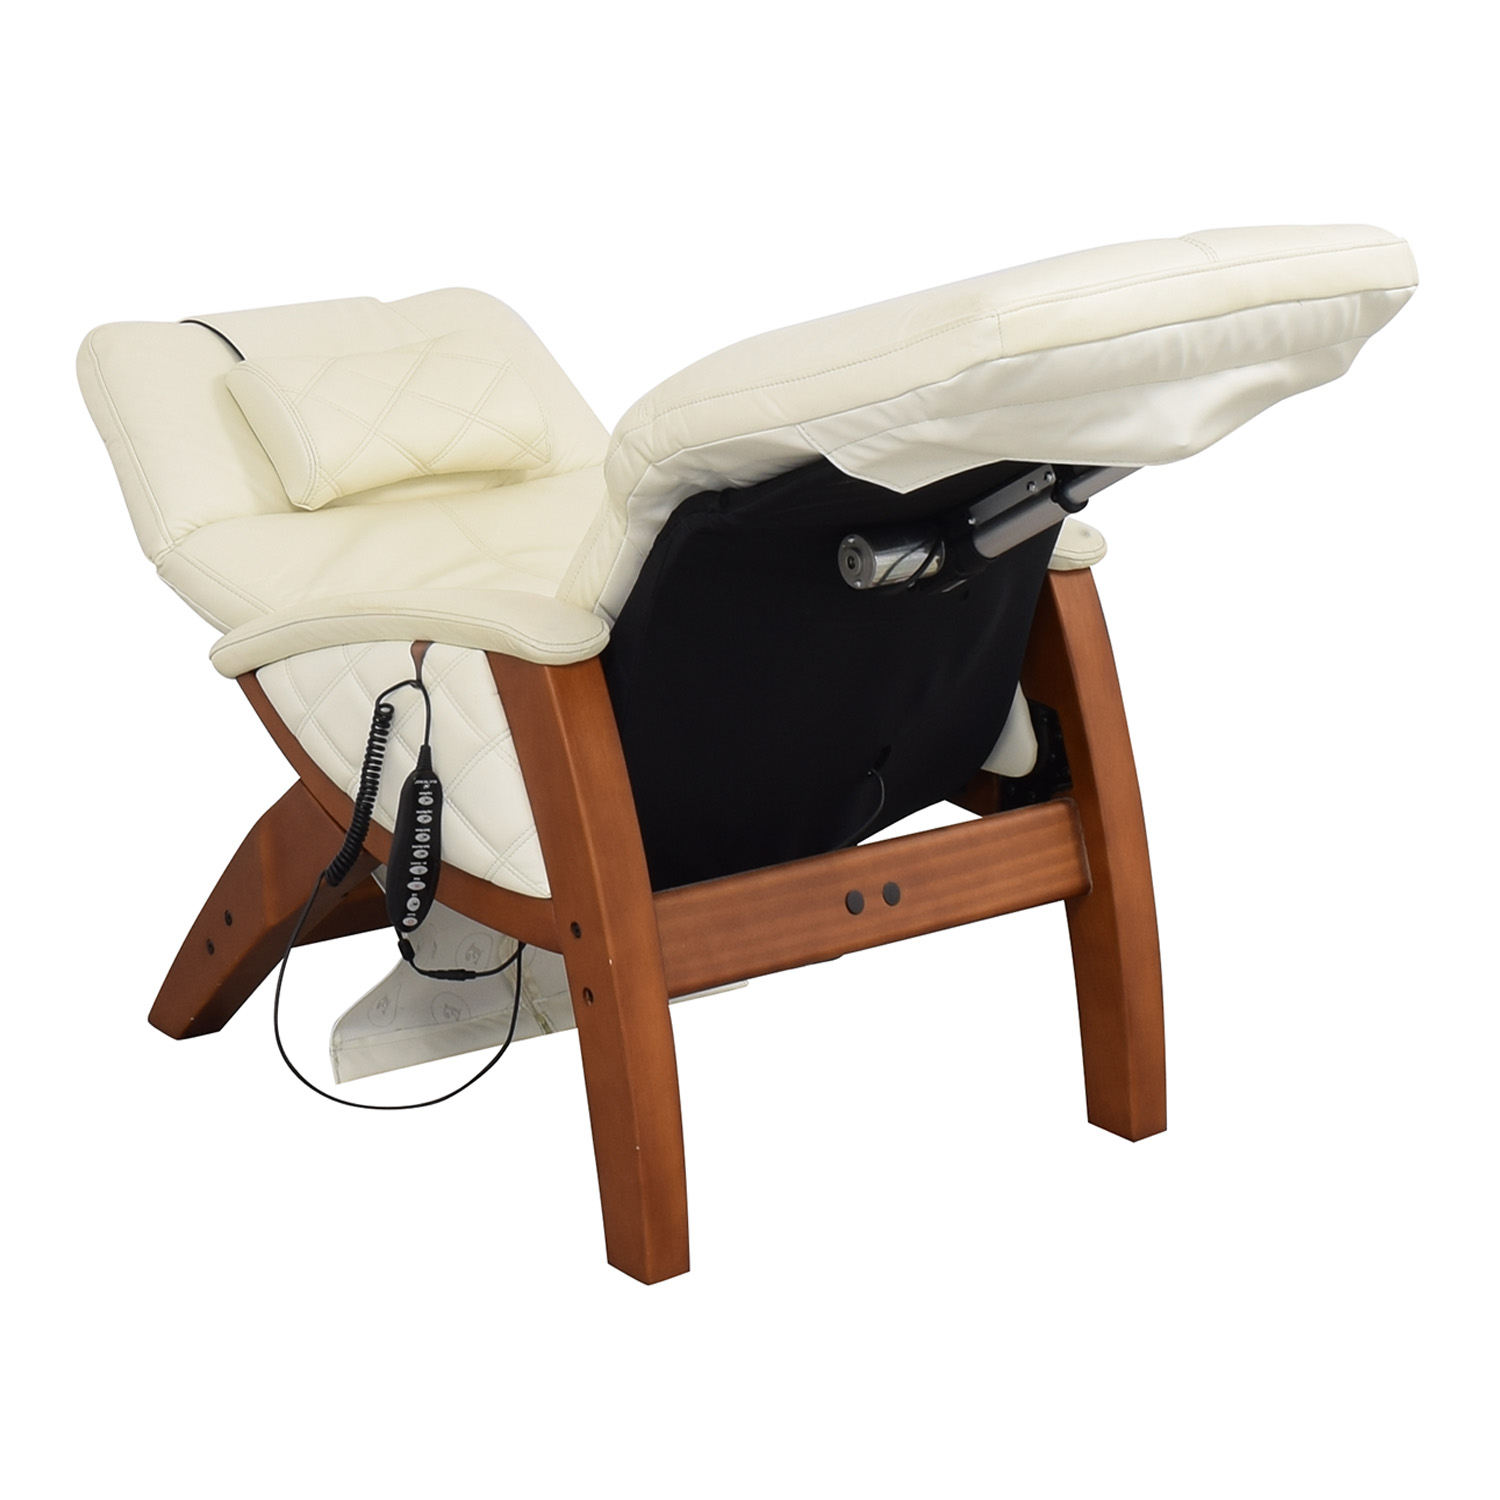 Relax The Back Relax The Back Electro Lounge Chair Chairs